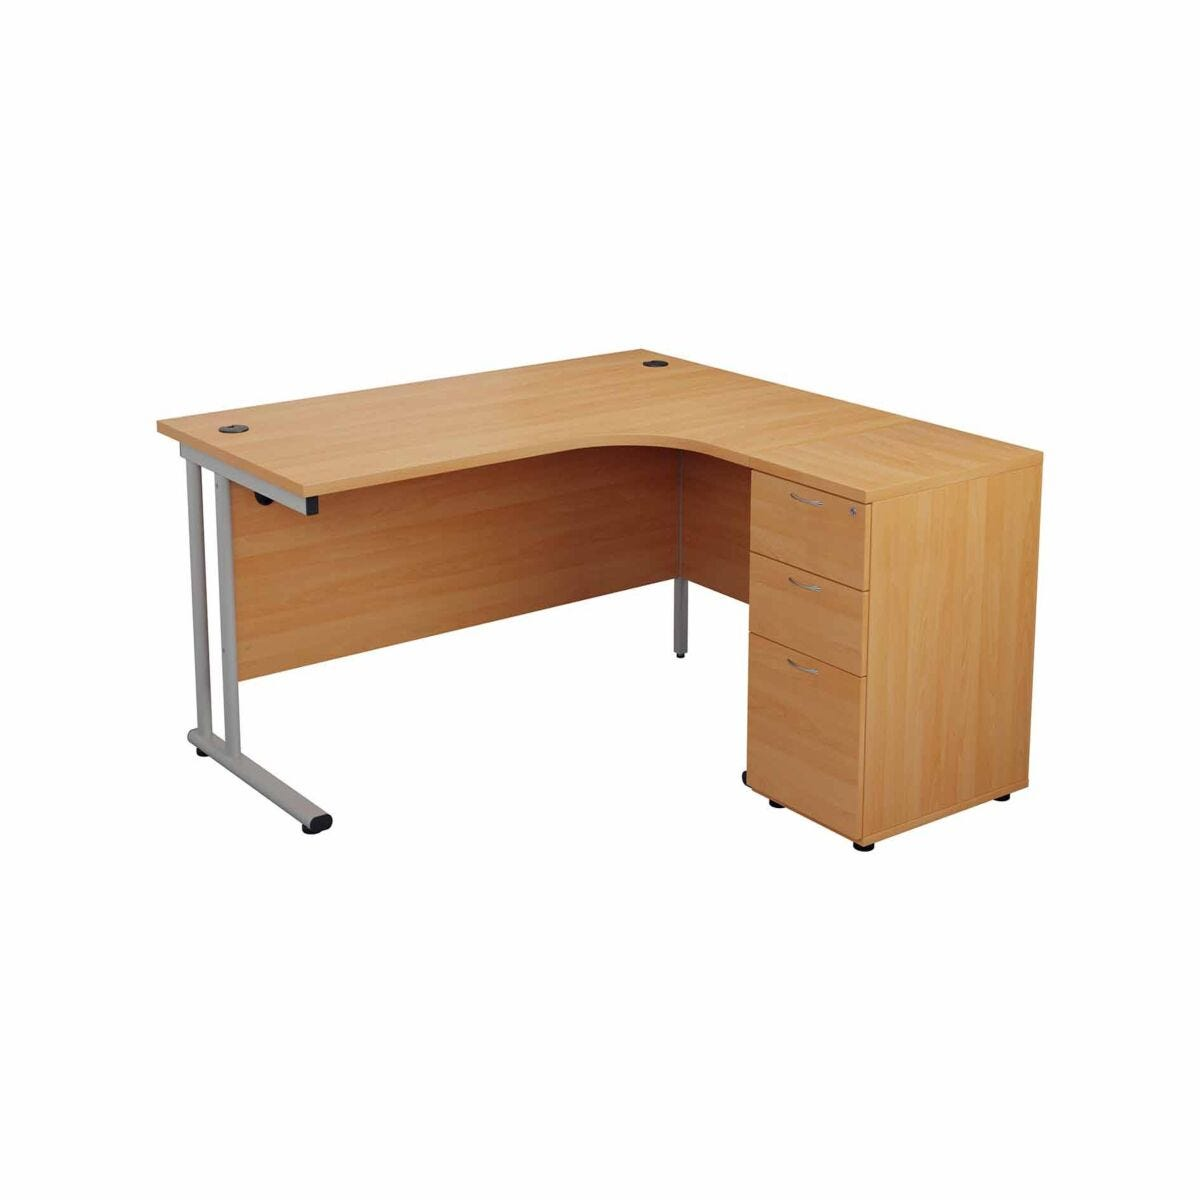 TC Office Start Silver Cantilever Frame Right Hand Crescent Desk with High Pedestal 1800x1200mm